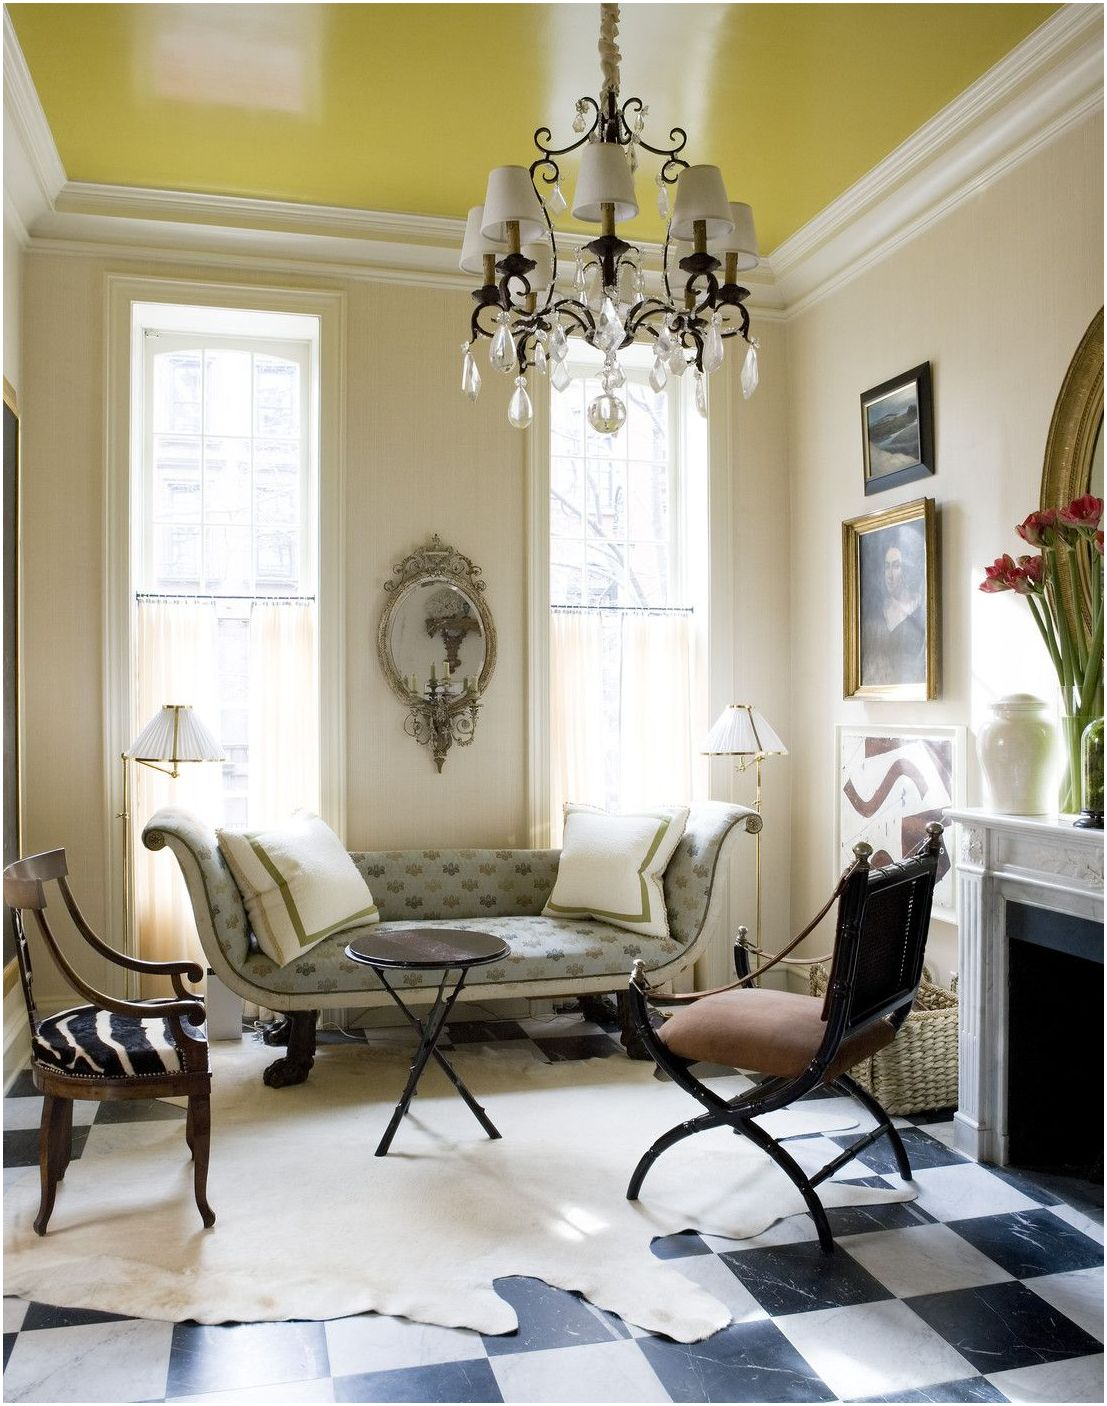 painted-ceiling. +70 Unique Ceiling Design Ideas for Your Living Room